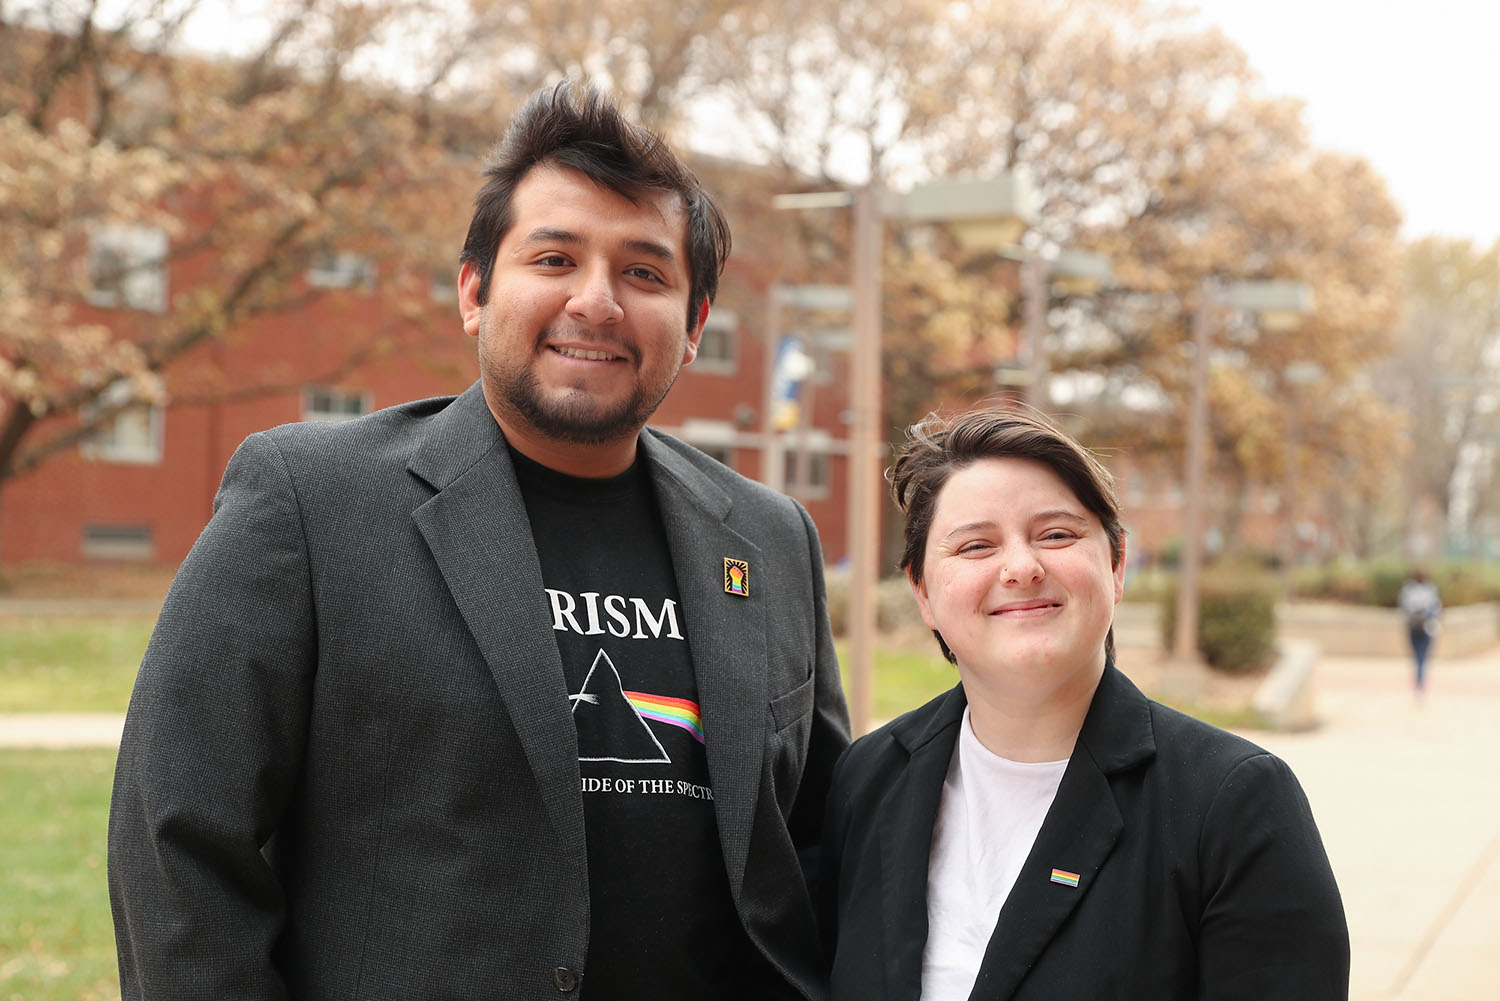 UNK seniors Eduardo Tecla and Shelby Nethercot are members of the PRISM student organization, which promotes awareness of the LGBTQIA+ community and provides a safe, welcoming space on campus for LGBTQIA+ students and allies. Tecla is the group's president and Nethercot serves as a secondary adviser. (Photos by Corbey R. Dorsey, UNK Communications)